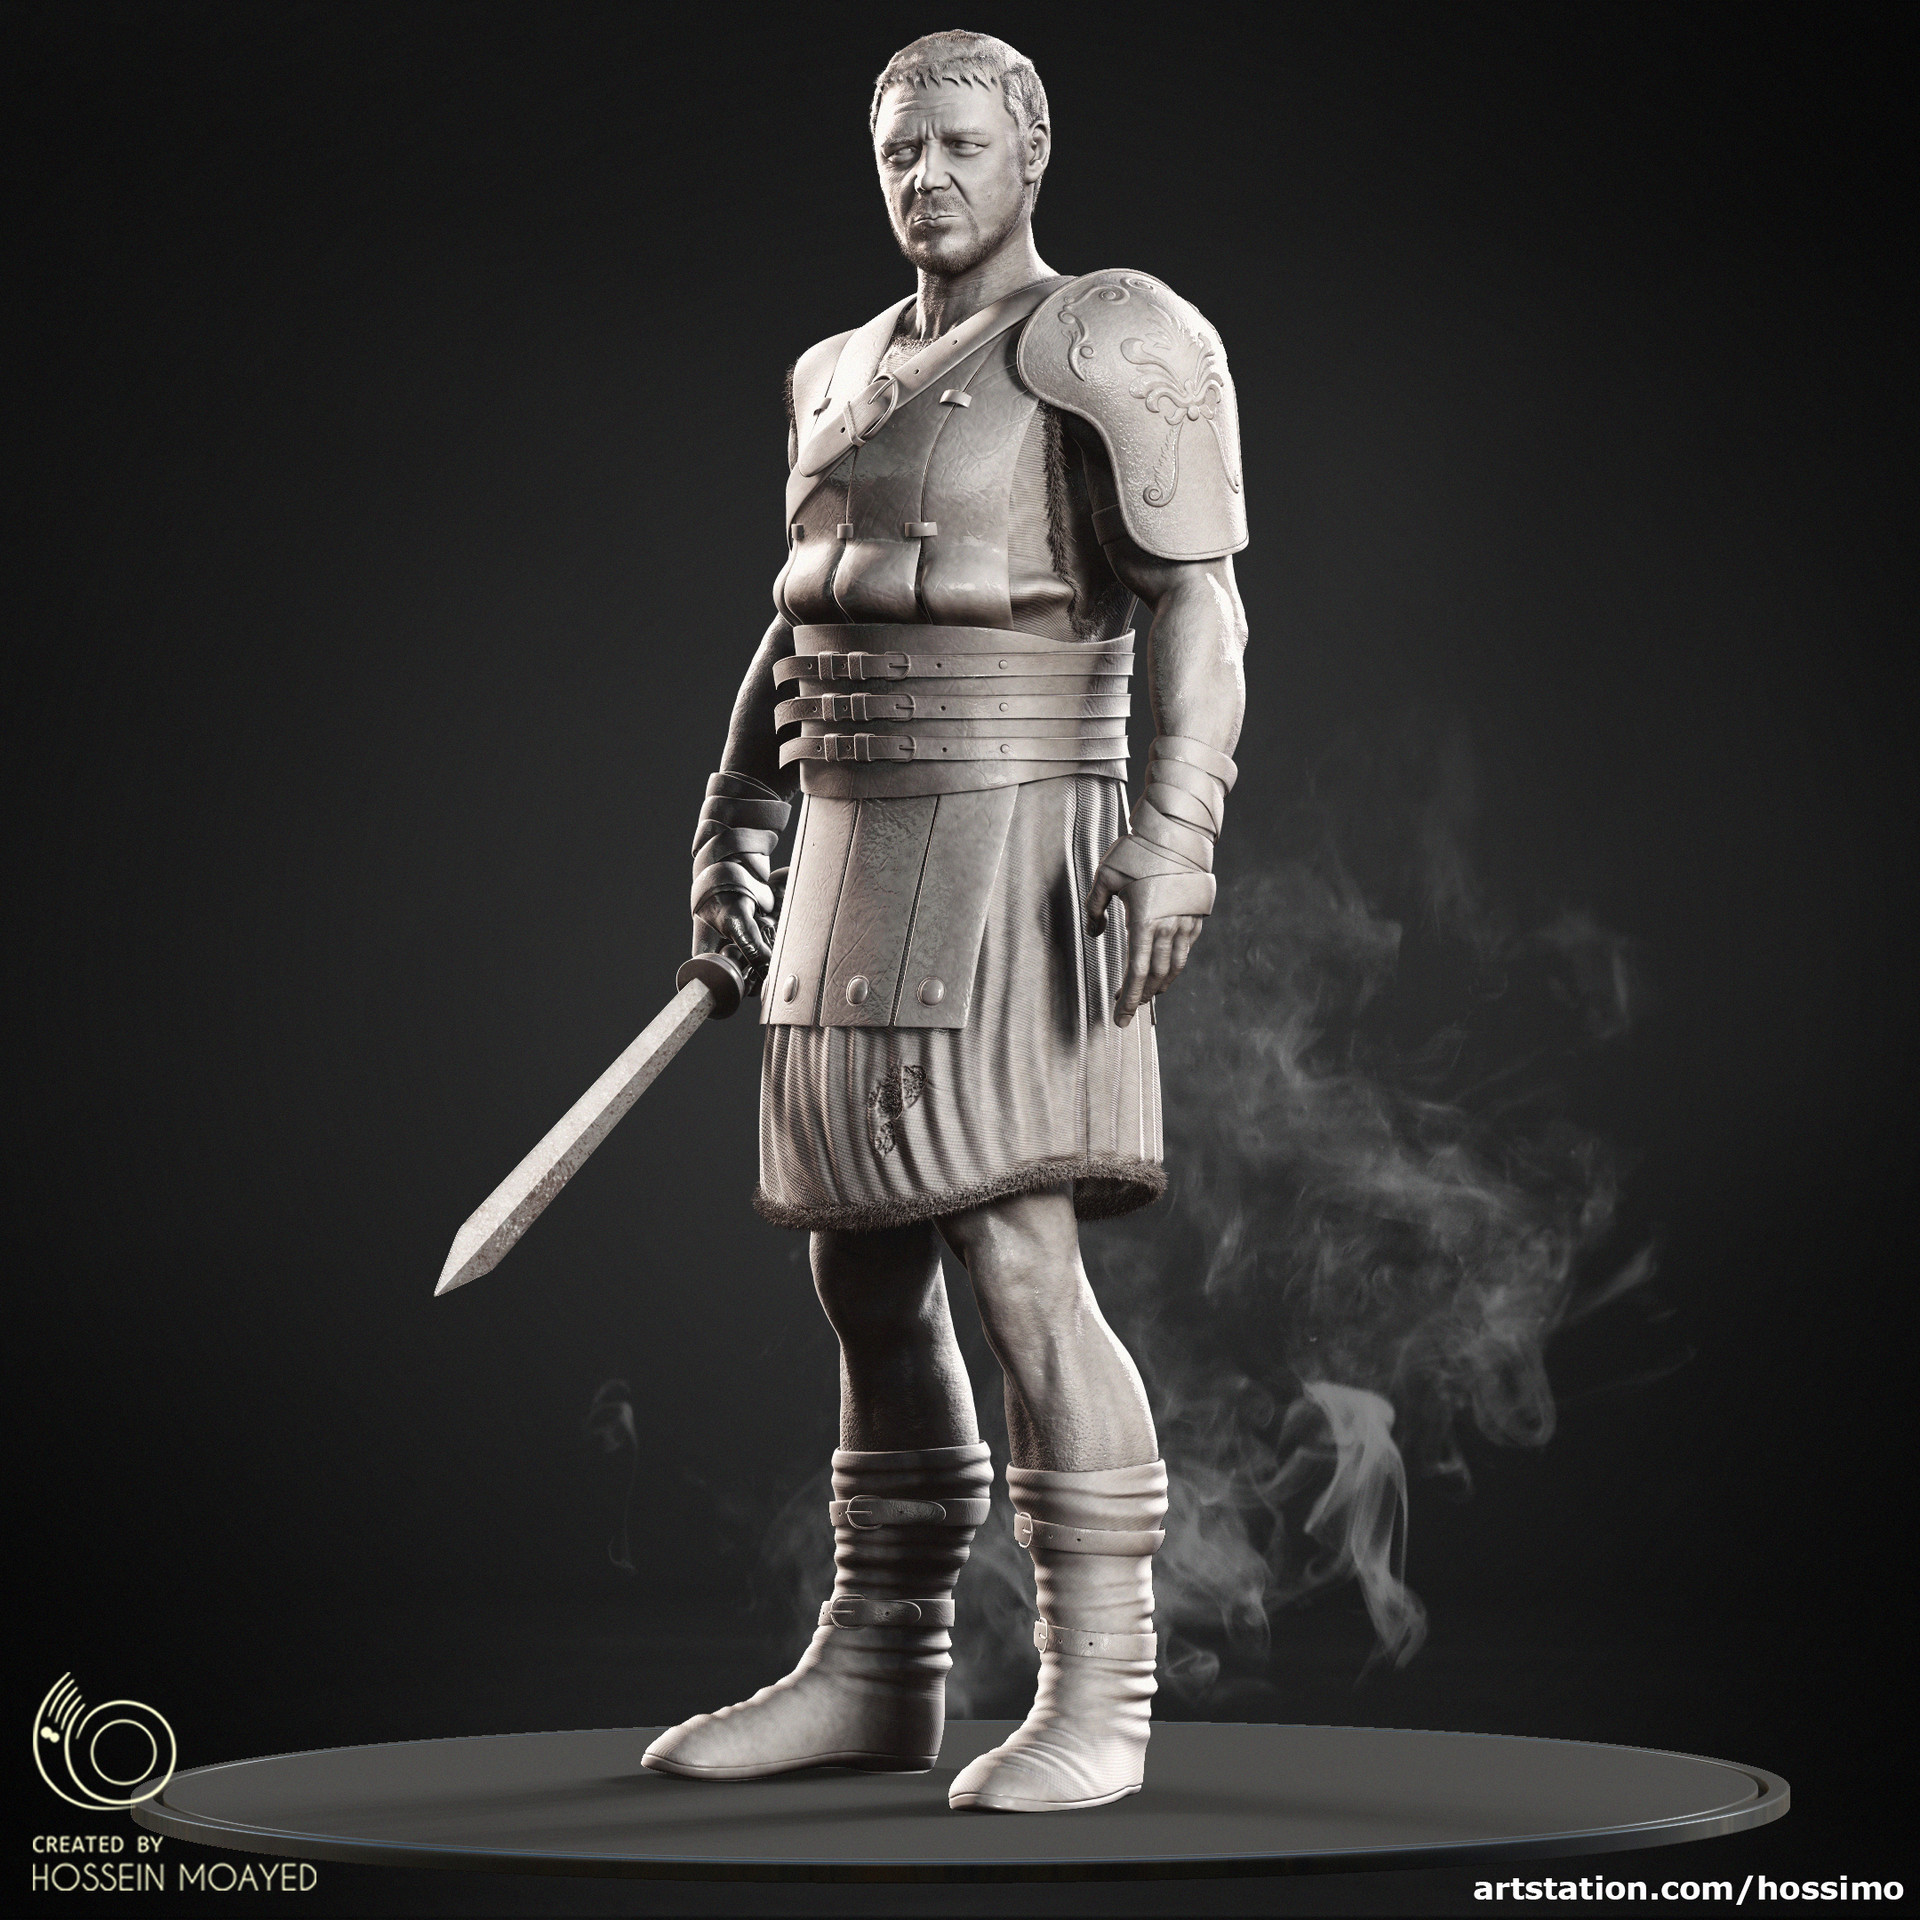 [Image: hossein-moayed-gladiator-tribute-sculptu...1534501659]